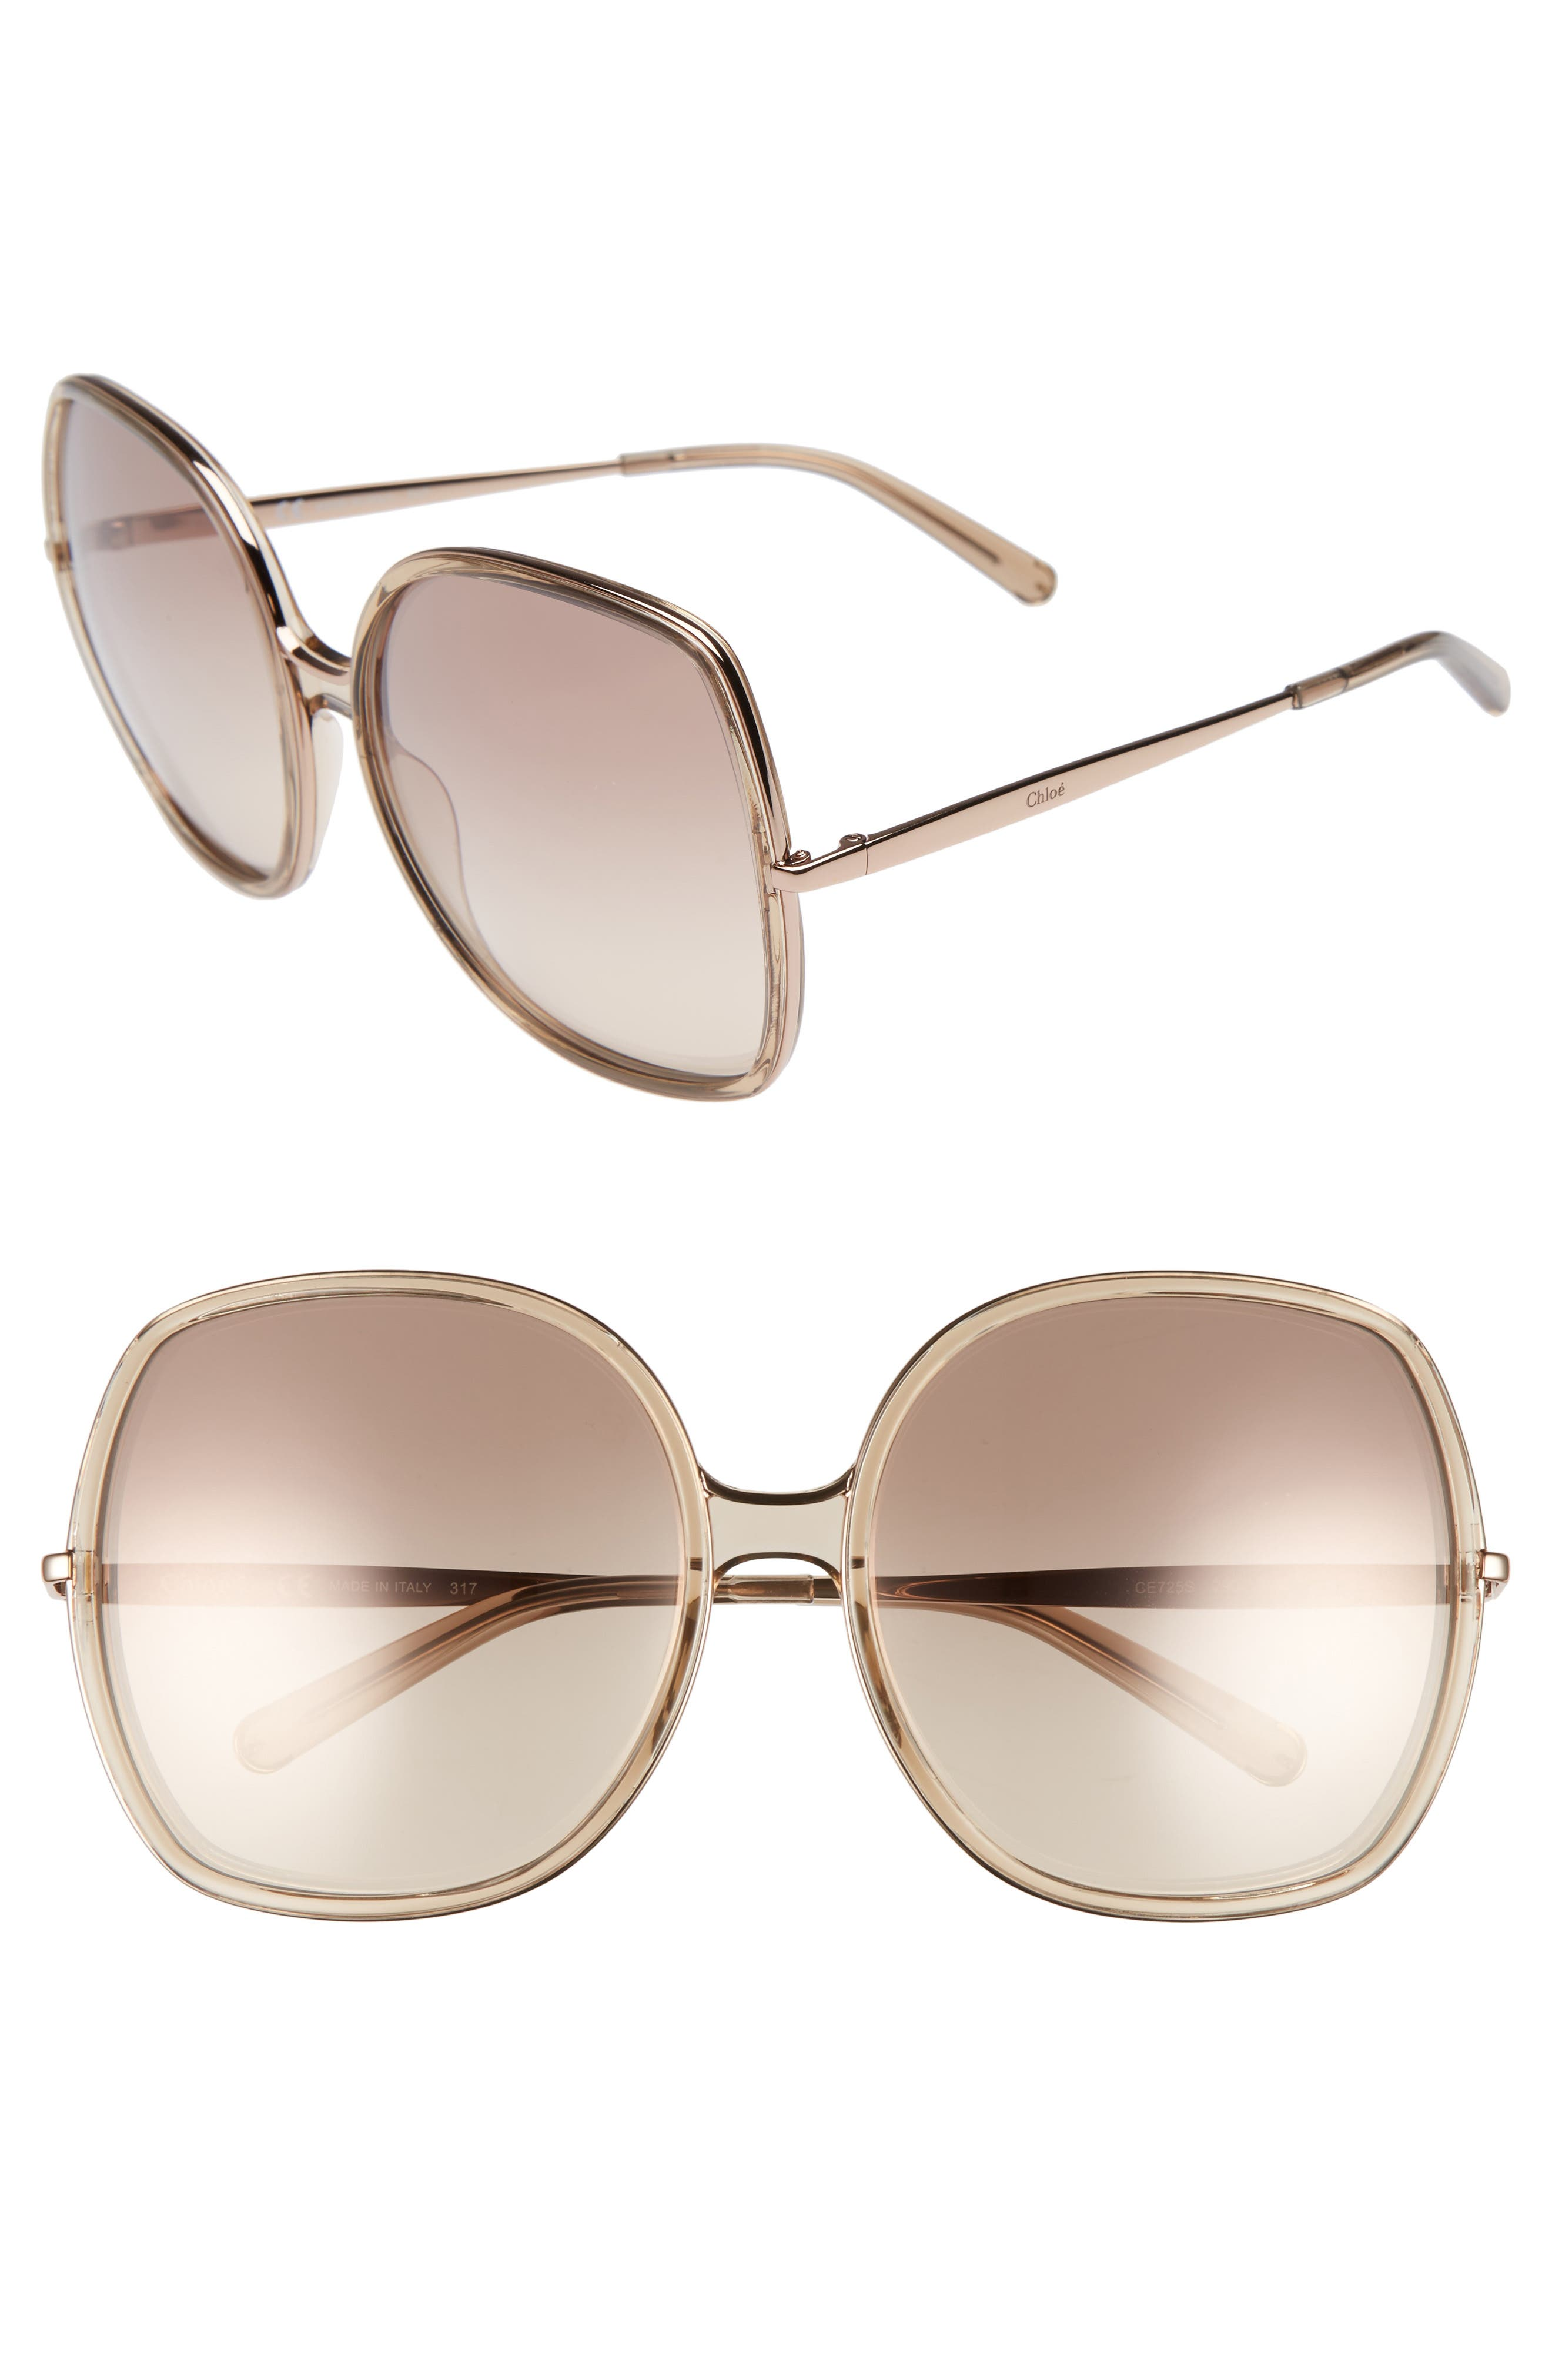 62mm Oversized Gradient Lens Square Sunglasses,                         Main,                         color, NUDE